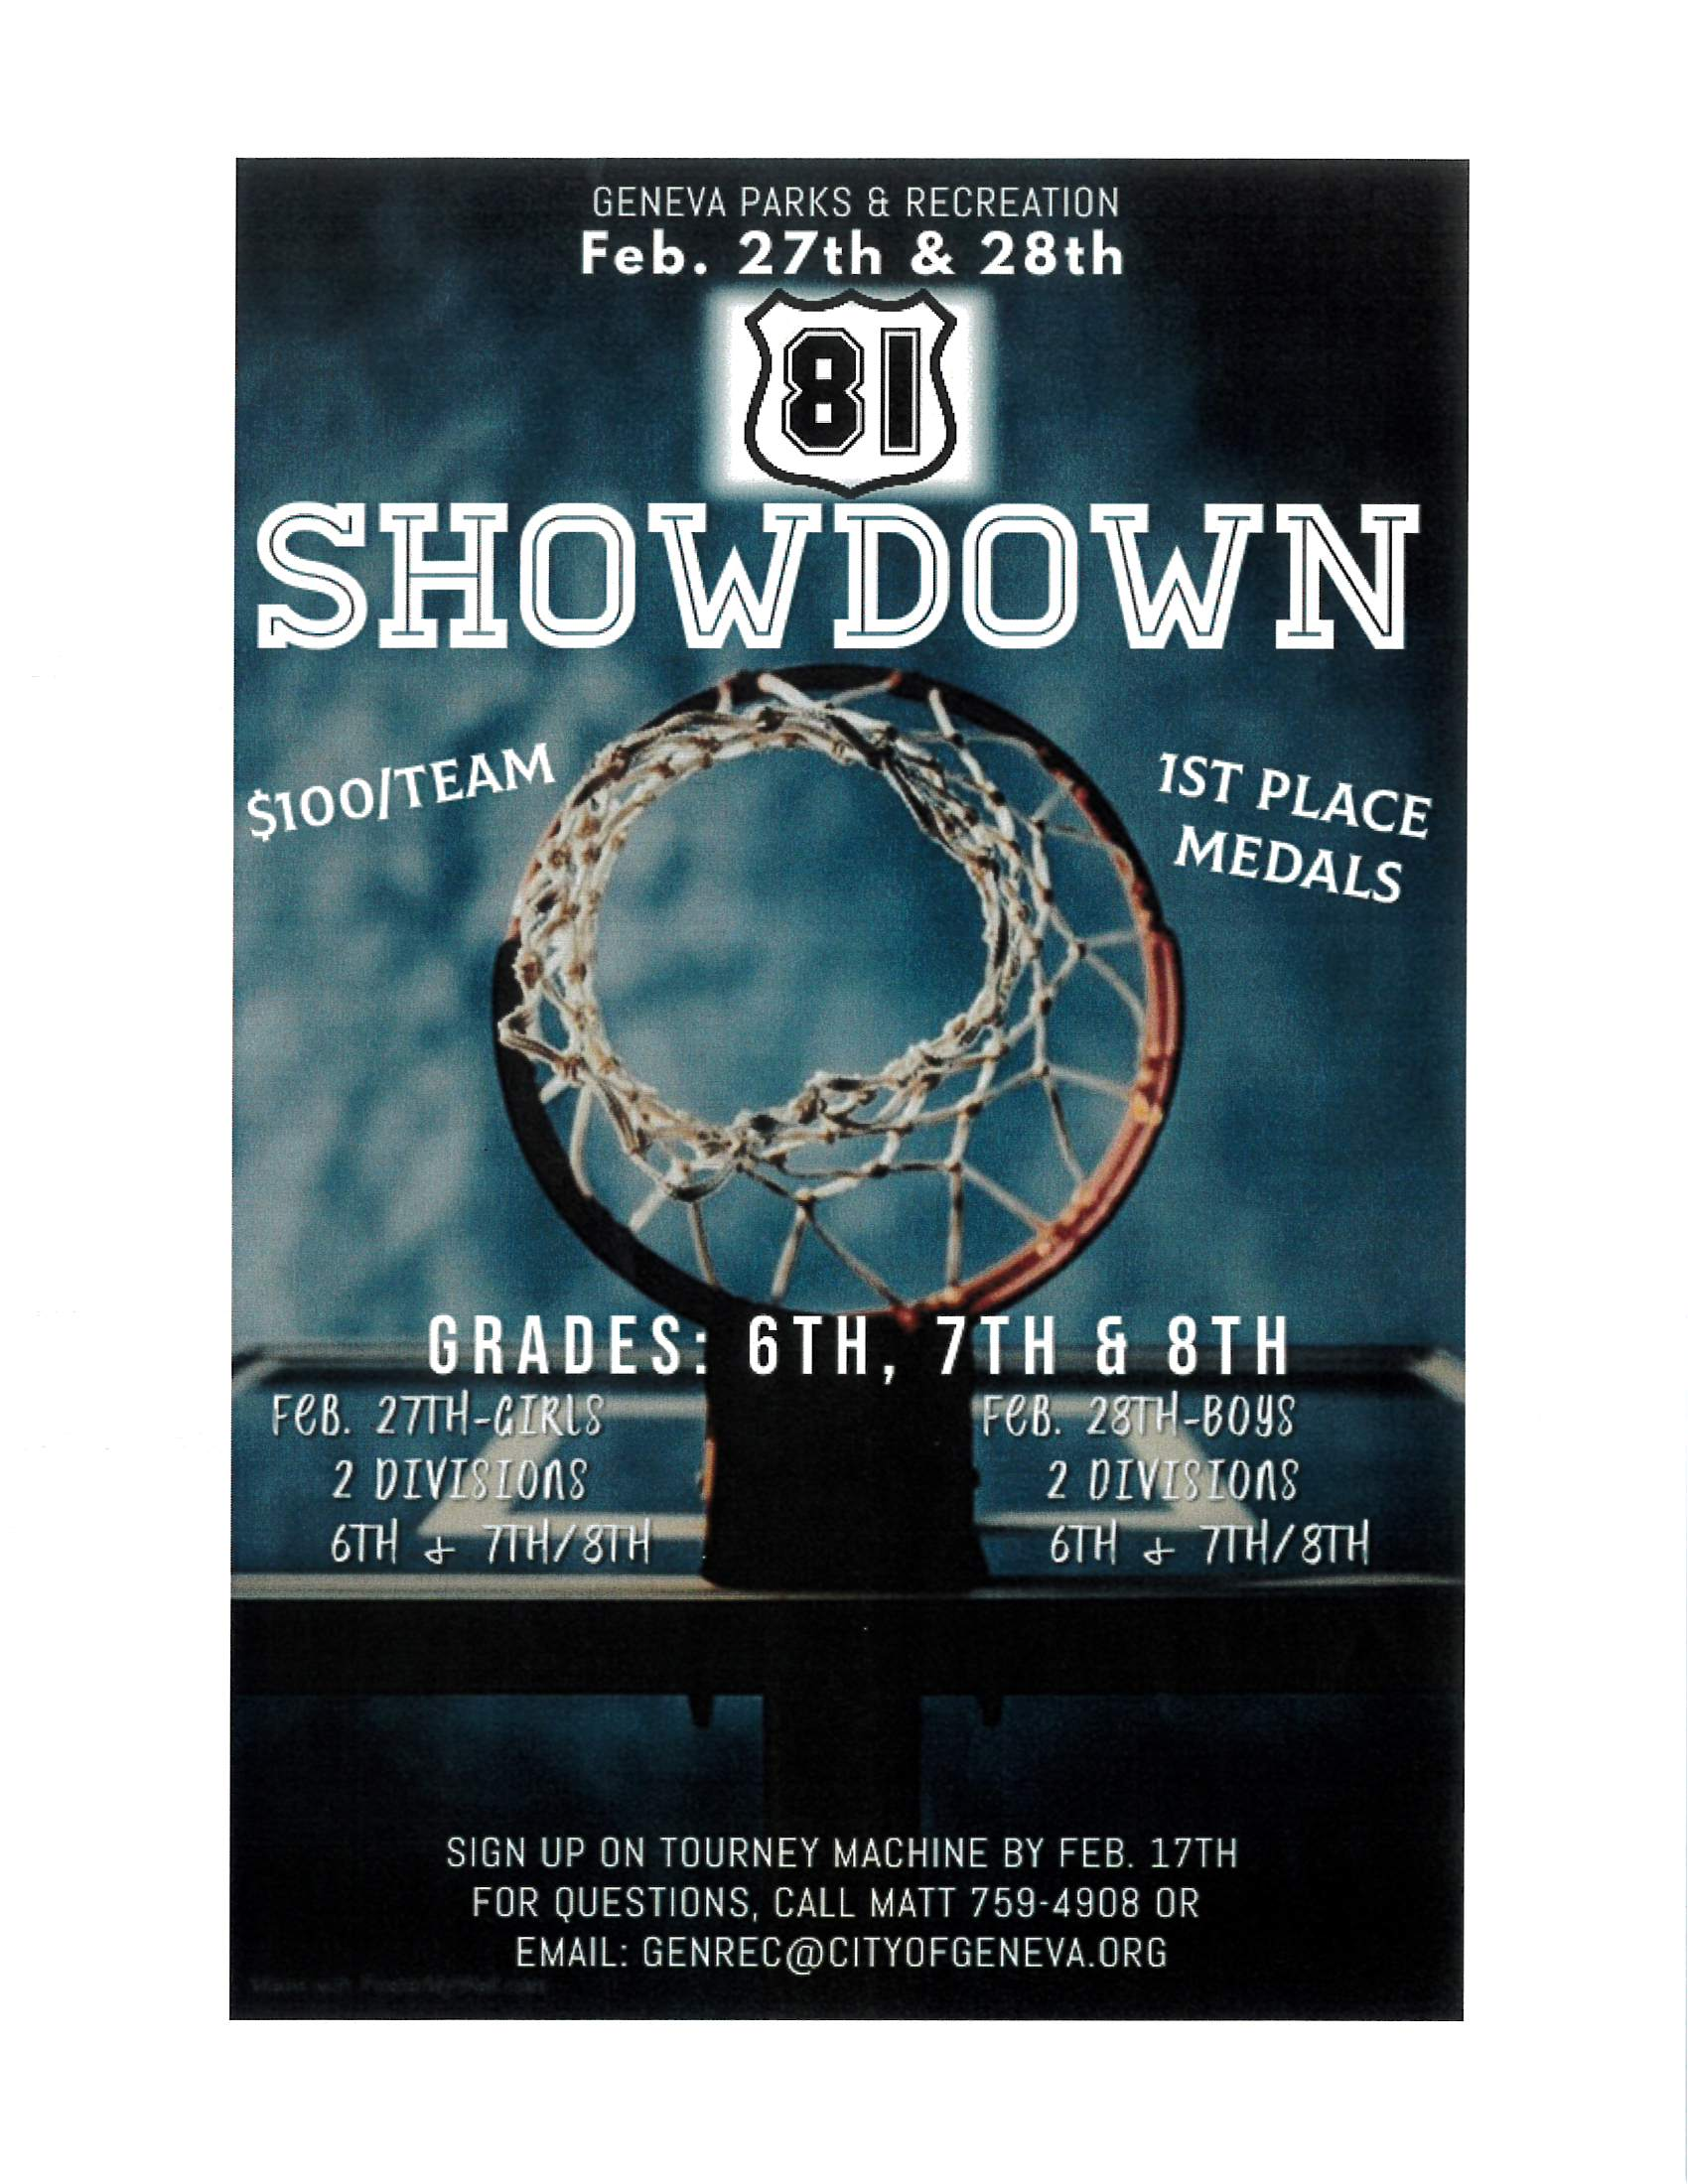 81 Showdown